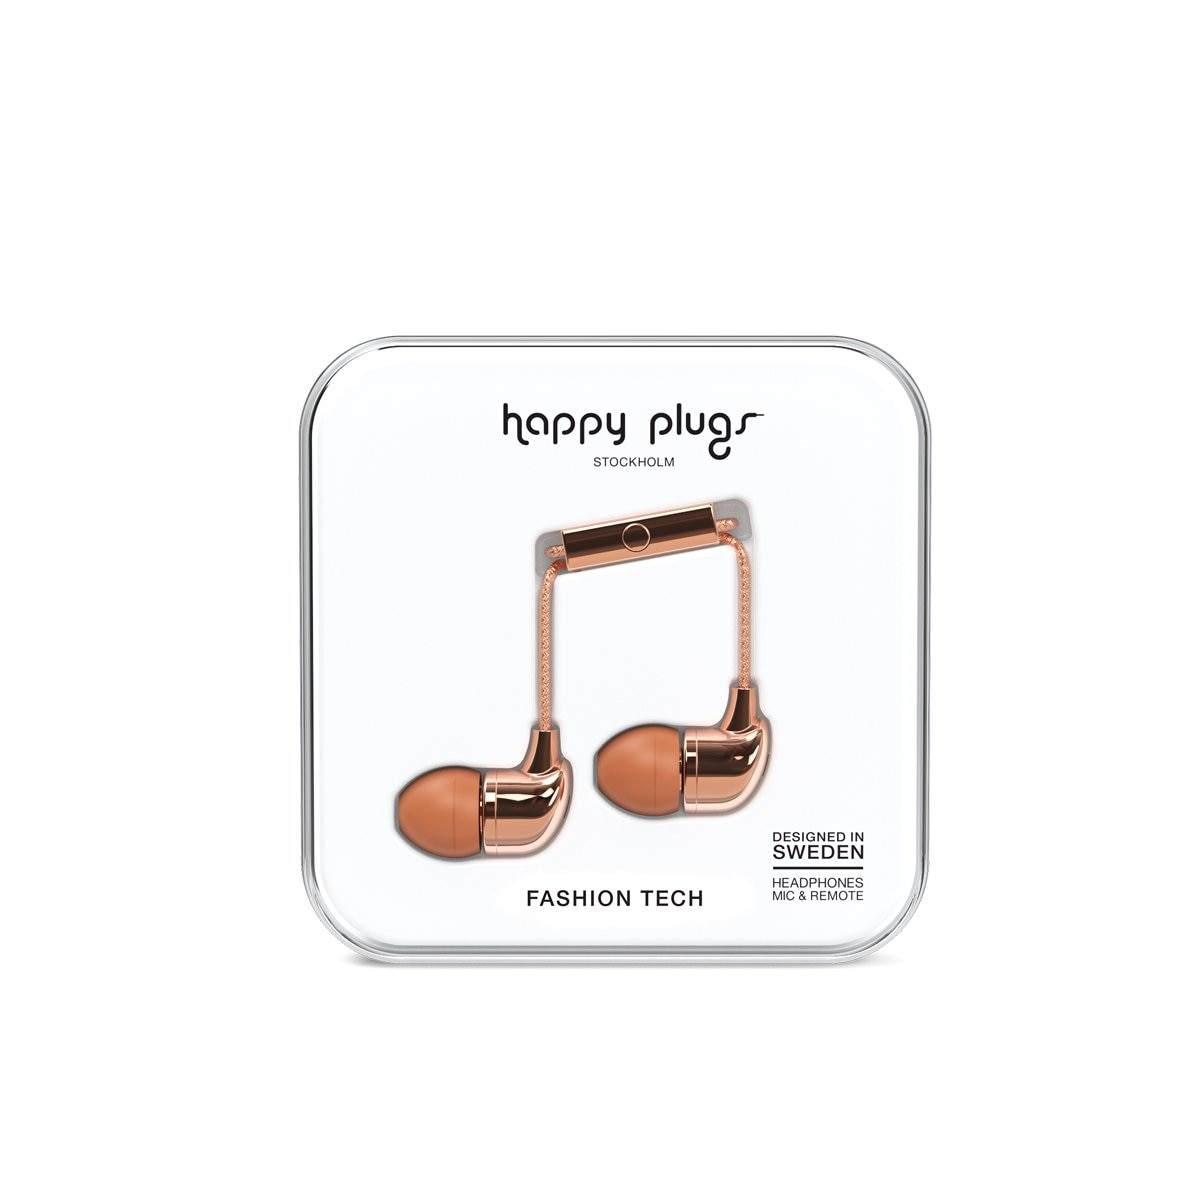 Audifonos C Microfono In Ear Rose Deluxe Gold Happy Plugs